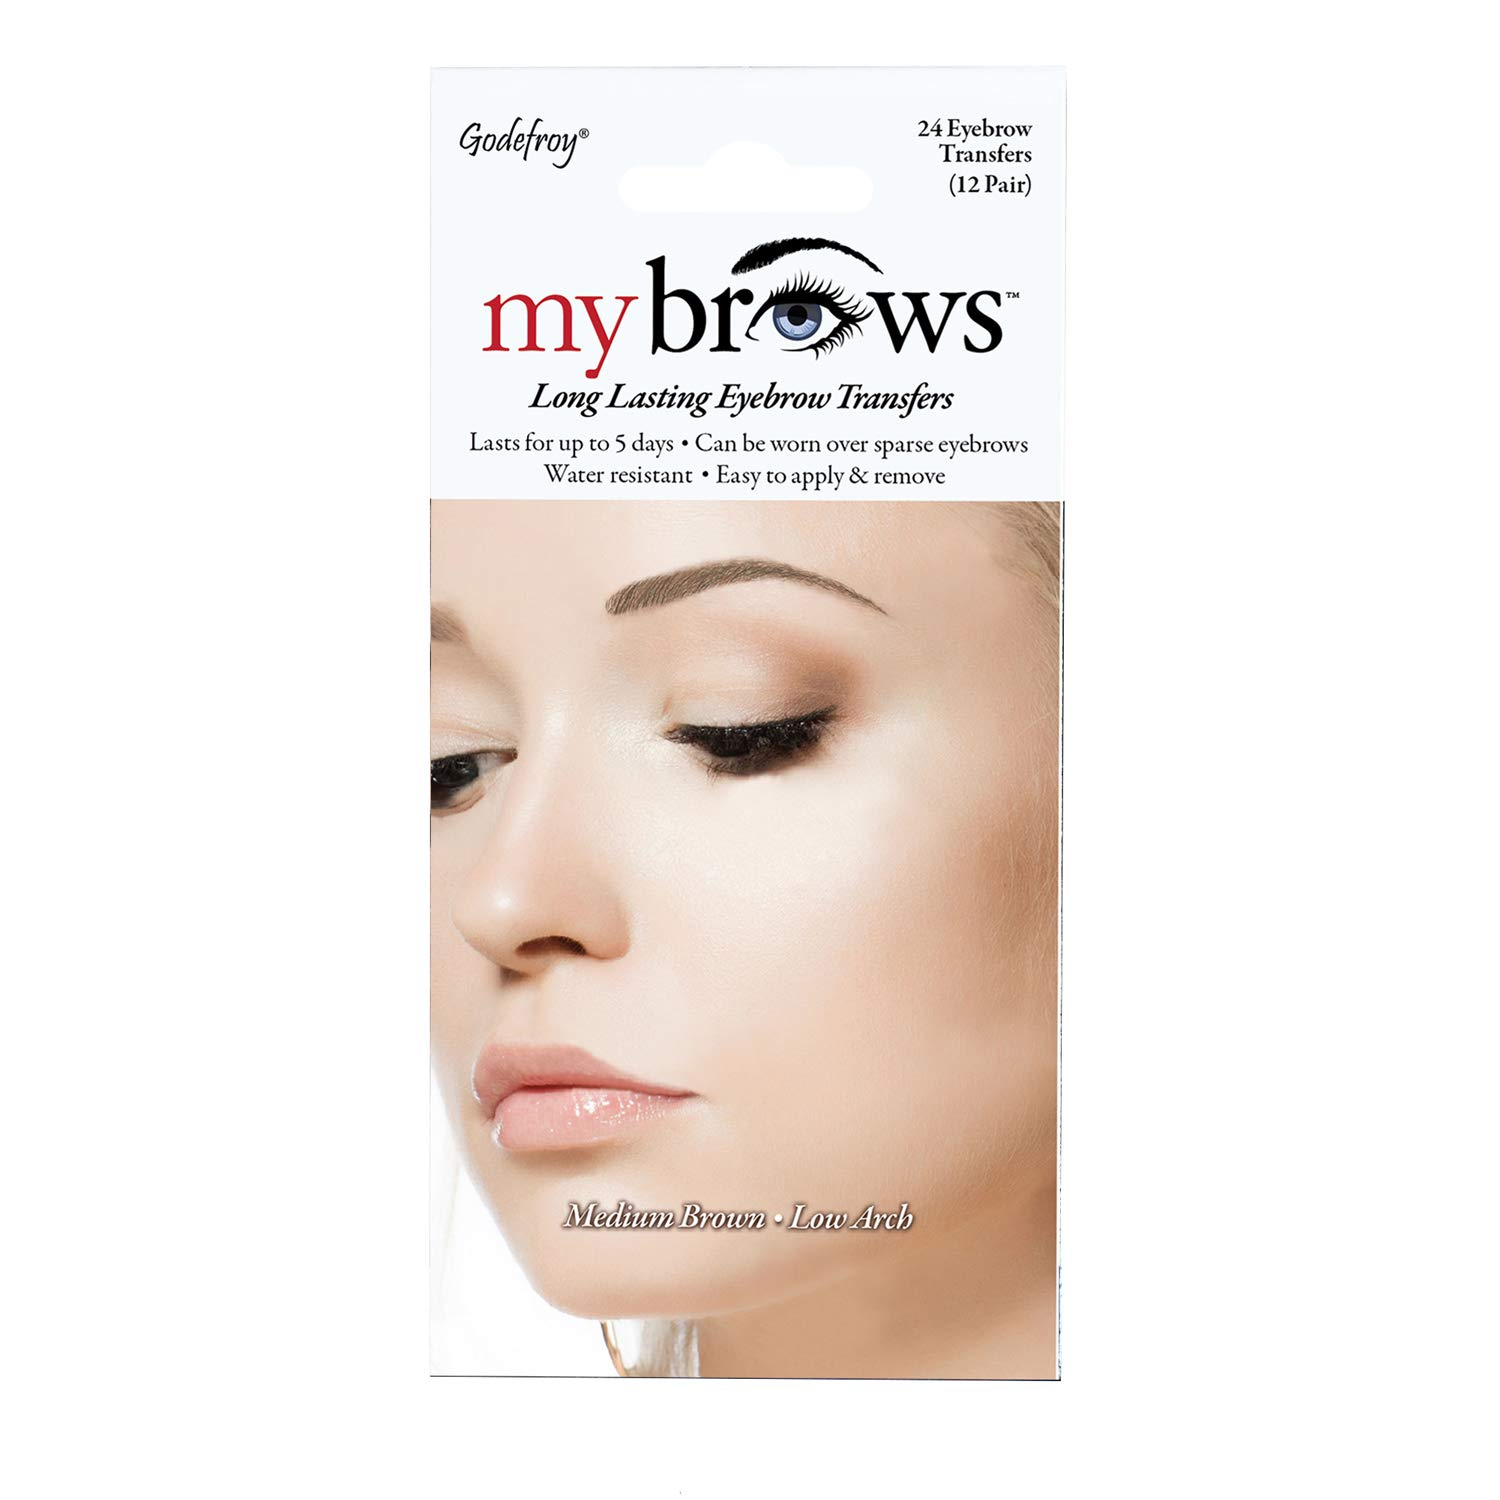 Amazon Com Godefroy Mybrows Long Lasting Eyebrow Transfers Low Arch Medium Brown 12 Pairs Of Brows Beauty